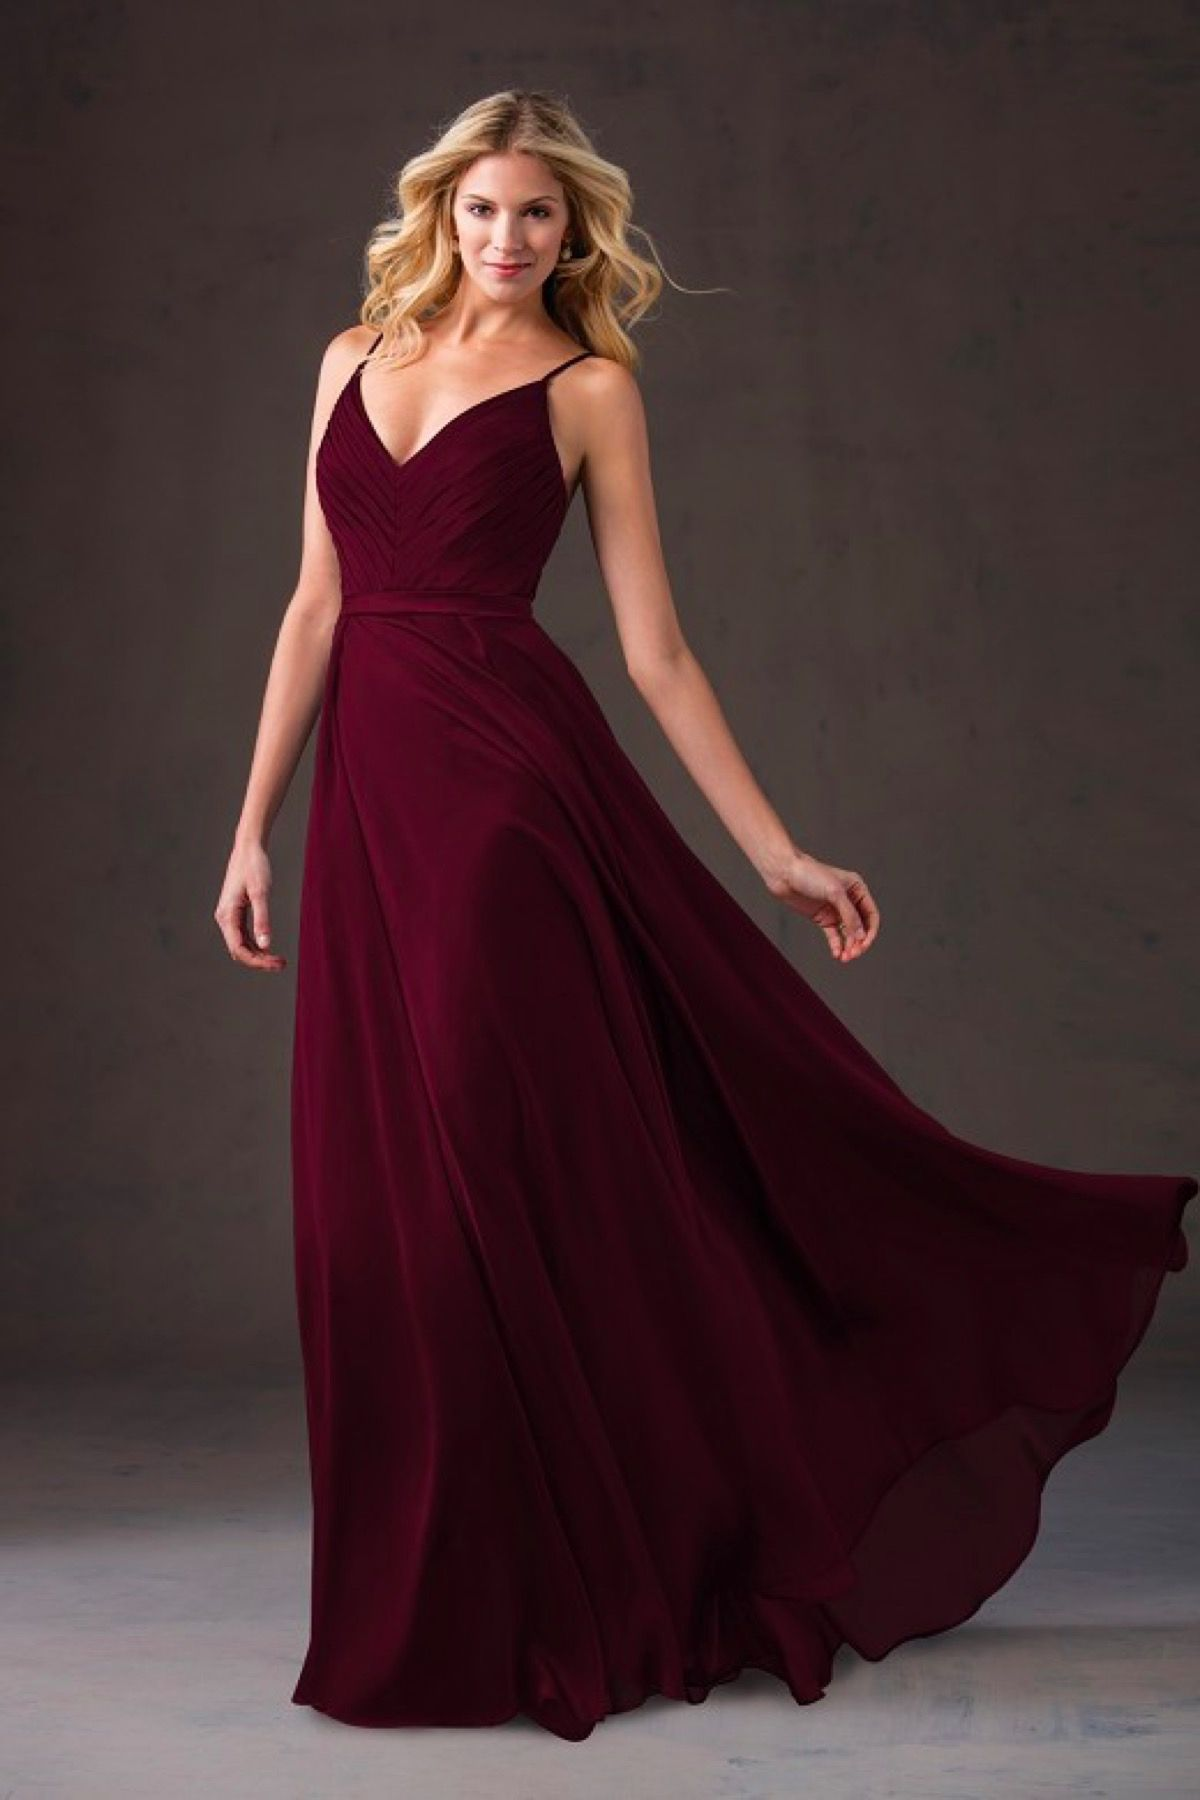 Bridesmaiddresses style l184056 in cranberry jasmine bridesmaiddresses style l184056 in cranberry jasmine ombrellifo Images